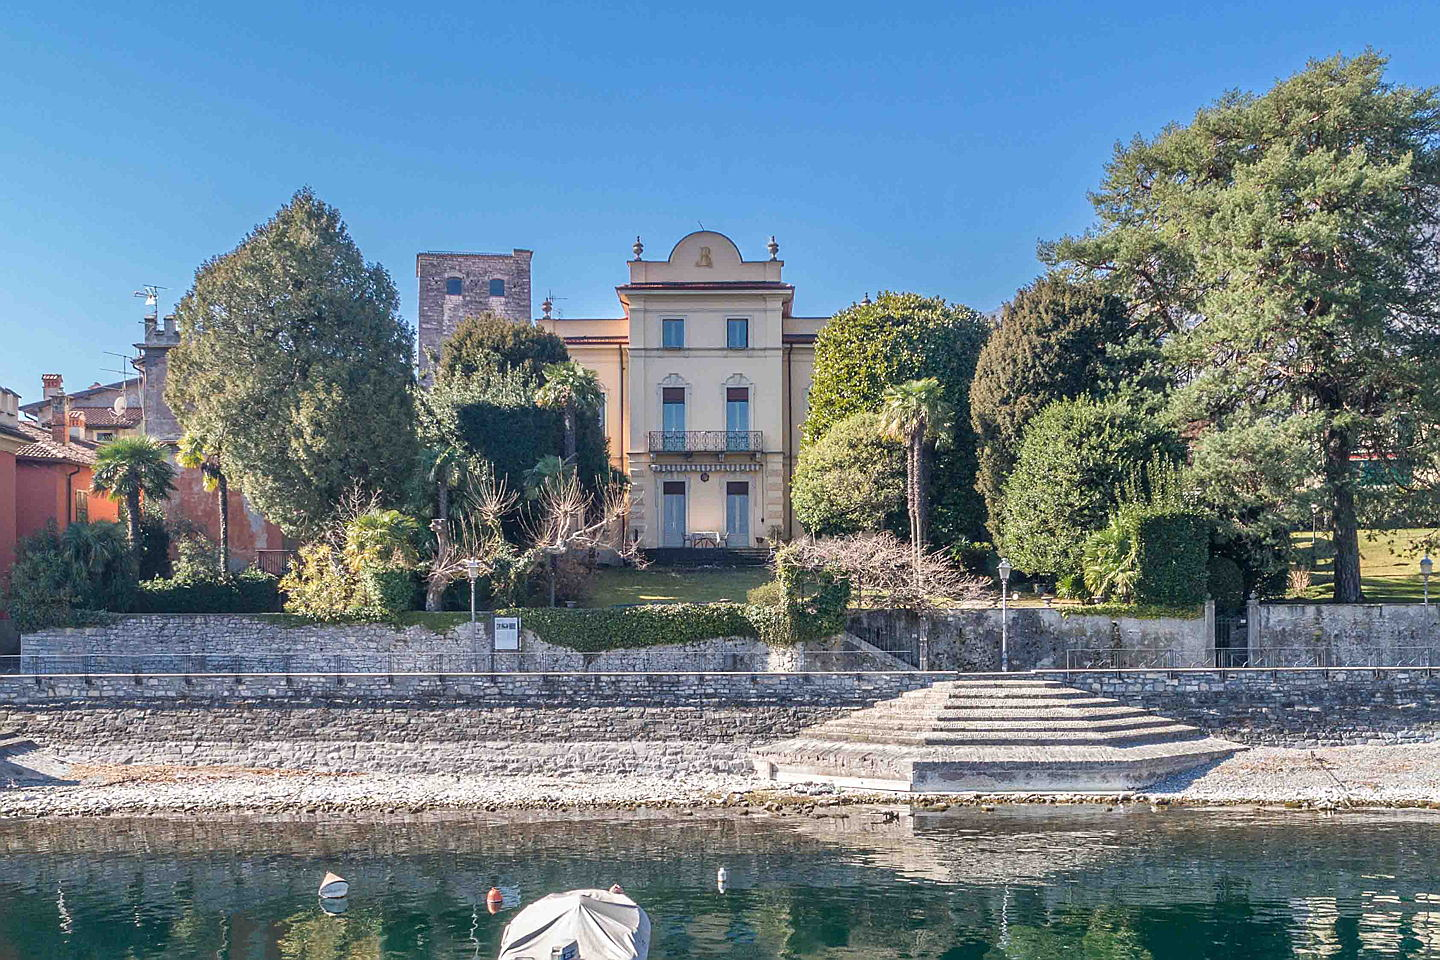 Visp - Engel & Völkers analyses the luxury real estate market at Lago di Como & Lago Maggiore. Forecast: The upward trend for property prices continues!